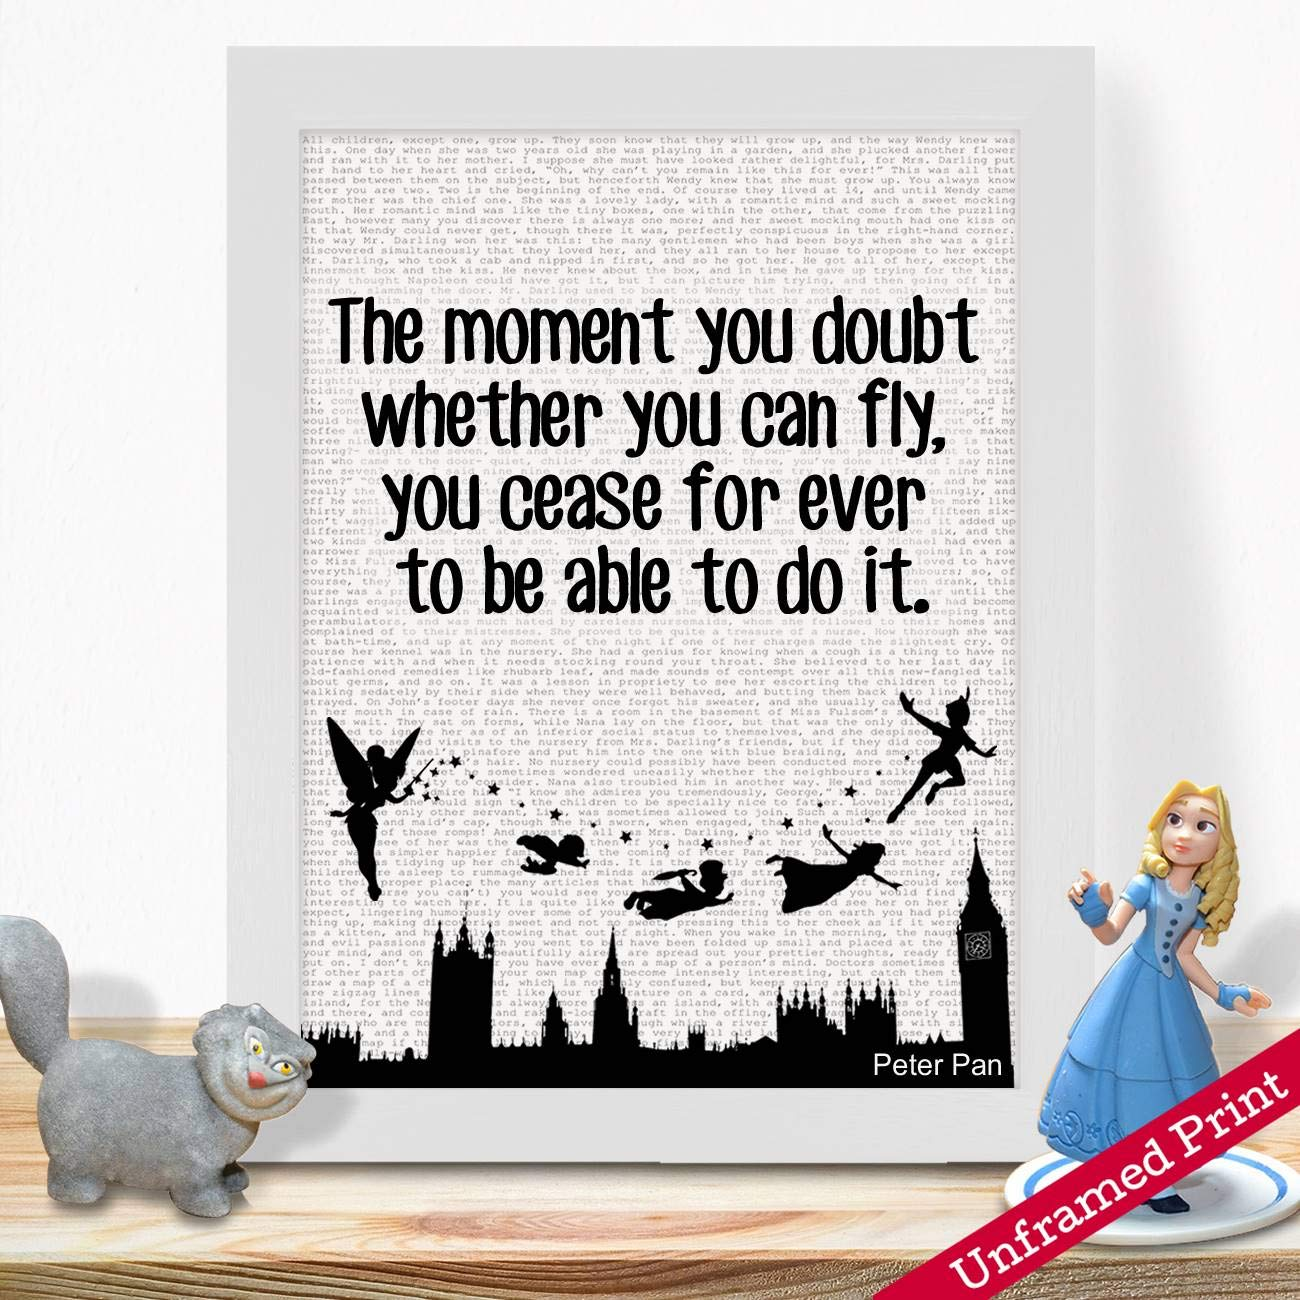 Peter Pan Presents Gifts For Girls Boys Young Kids Fans Lovers Birthday Christening Room Nursery Disney Inspired Themed Quotes Vintage Home Decorations Ideas Unique The Moment You Doubt Print